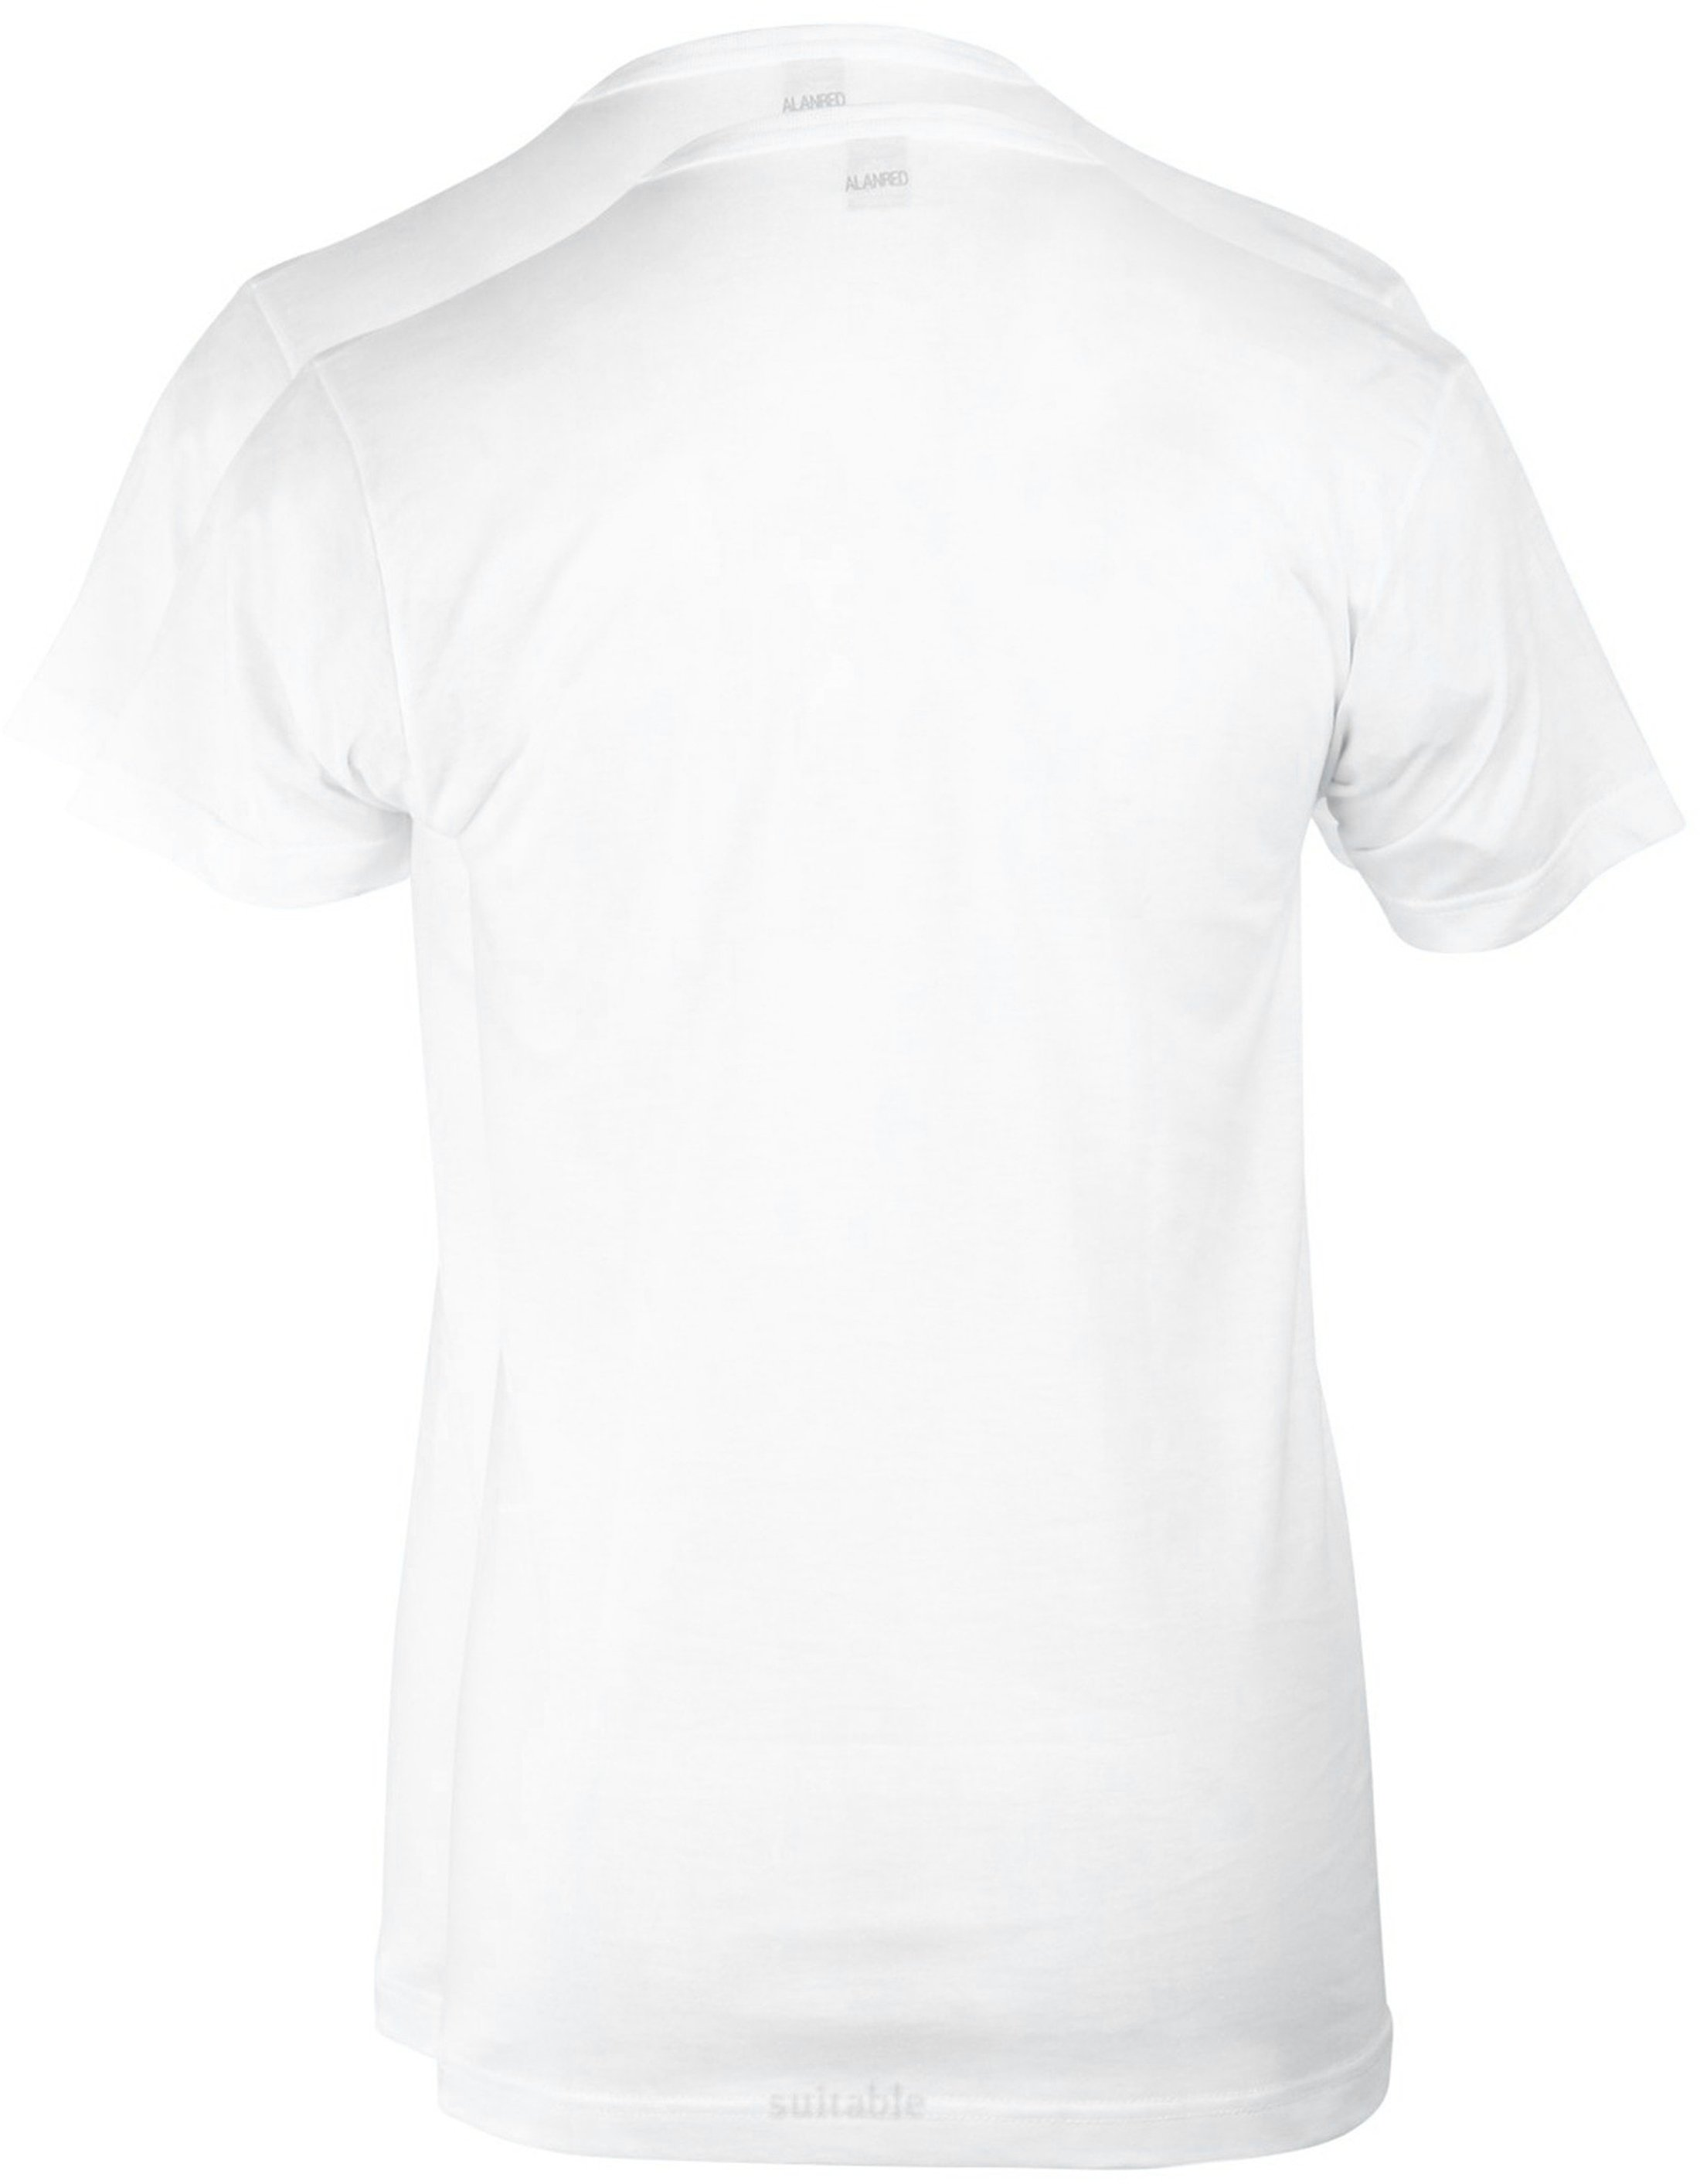 Alan Red West-Virginia V-Neck White 2-Pack foto 2